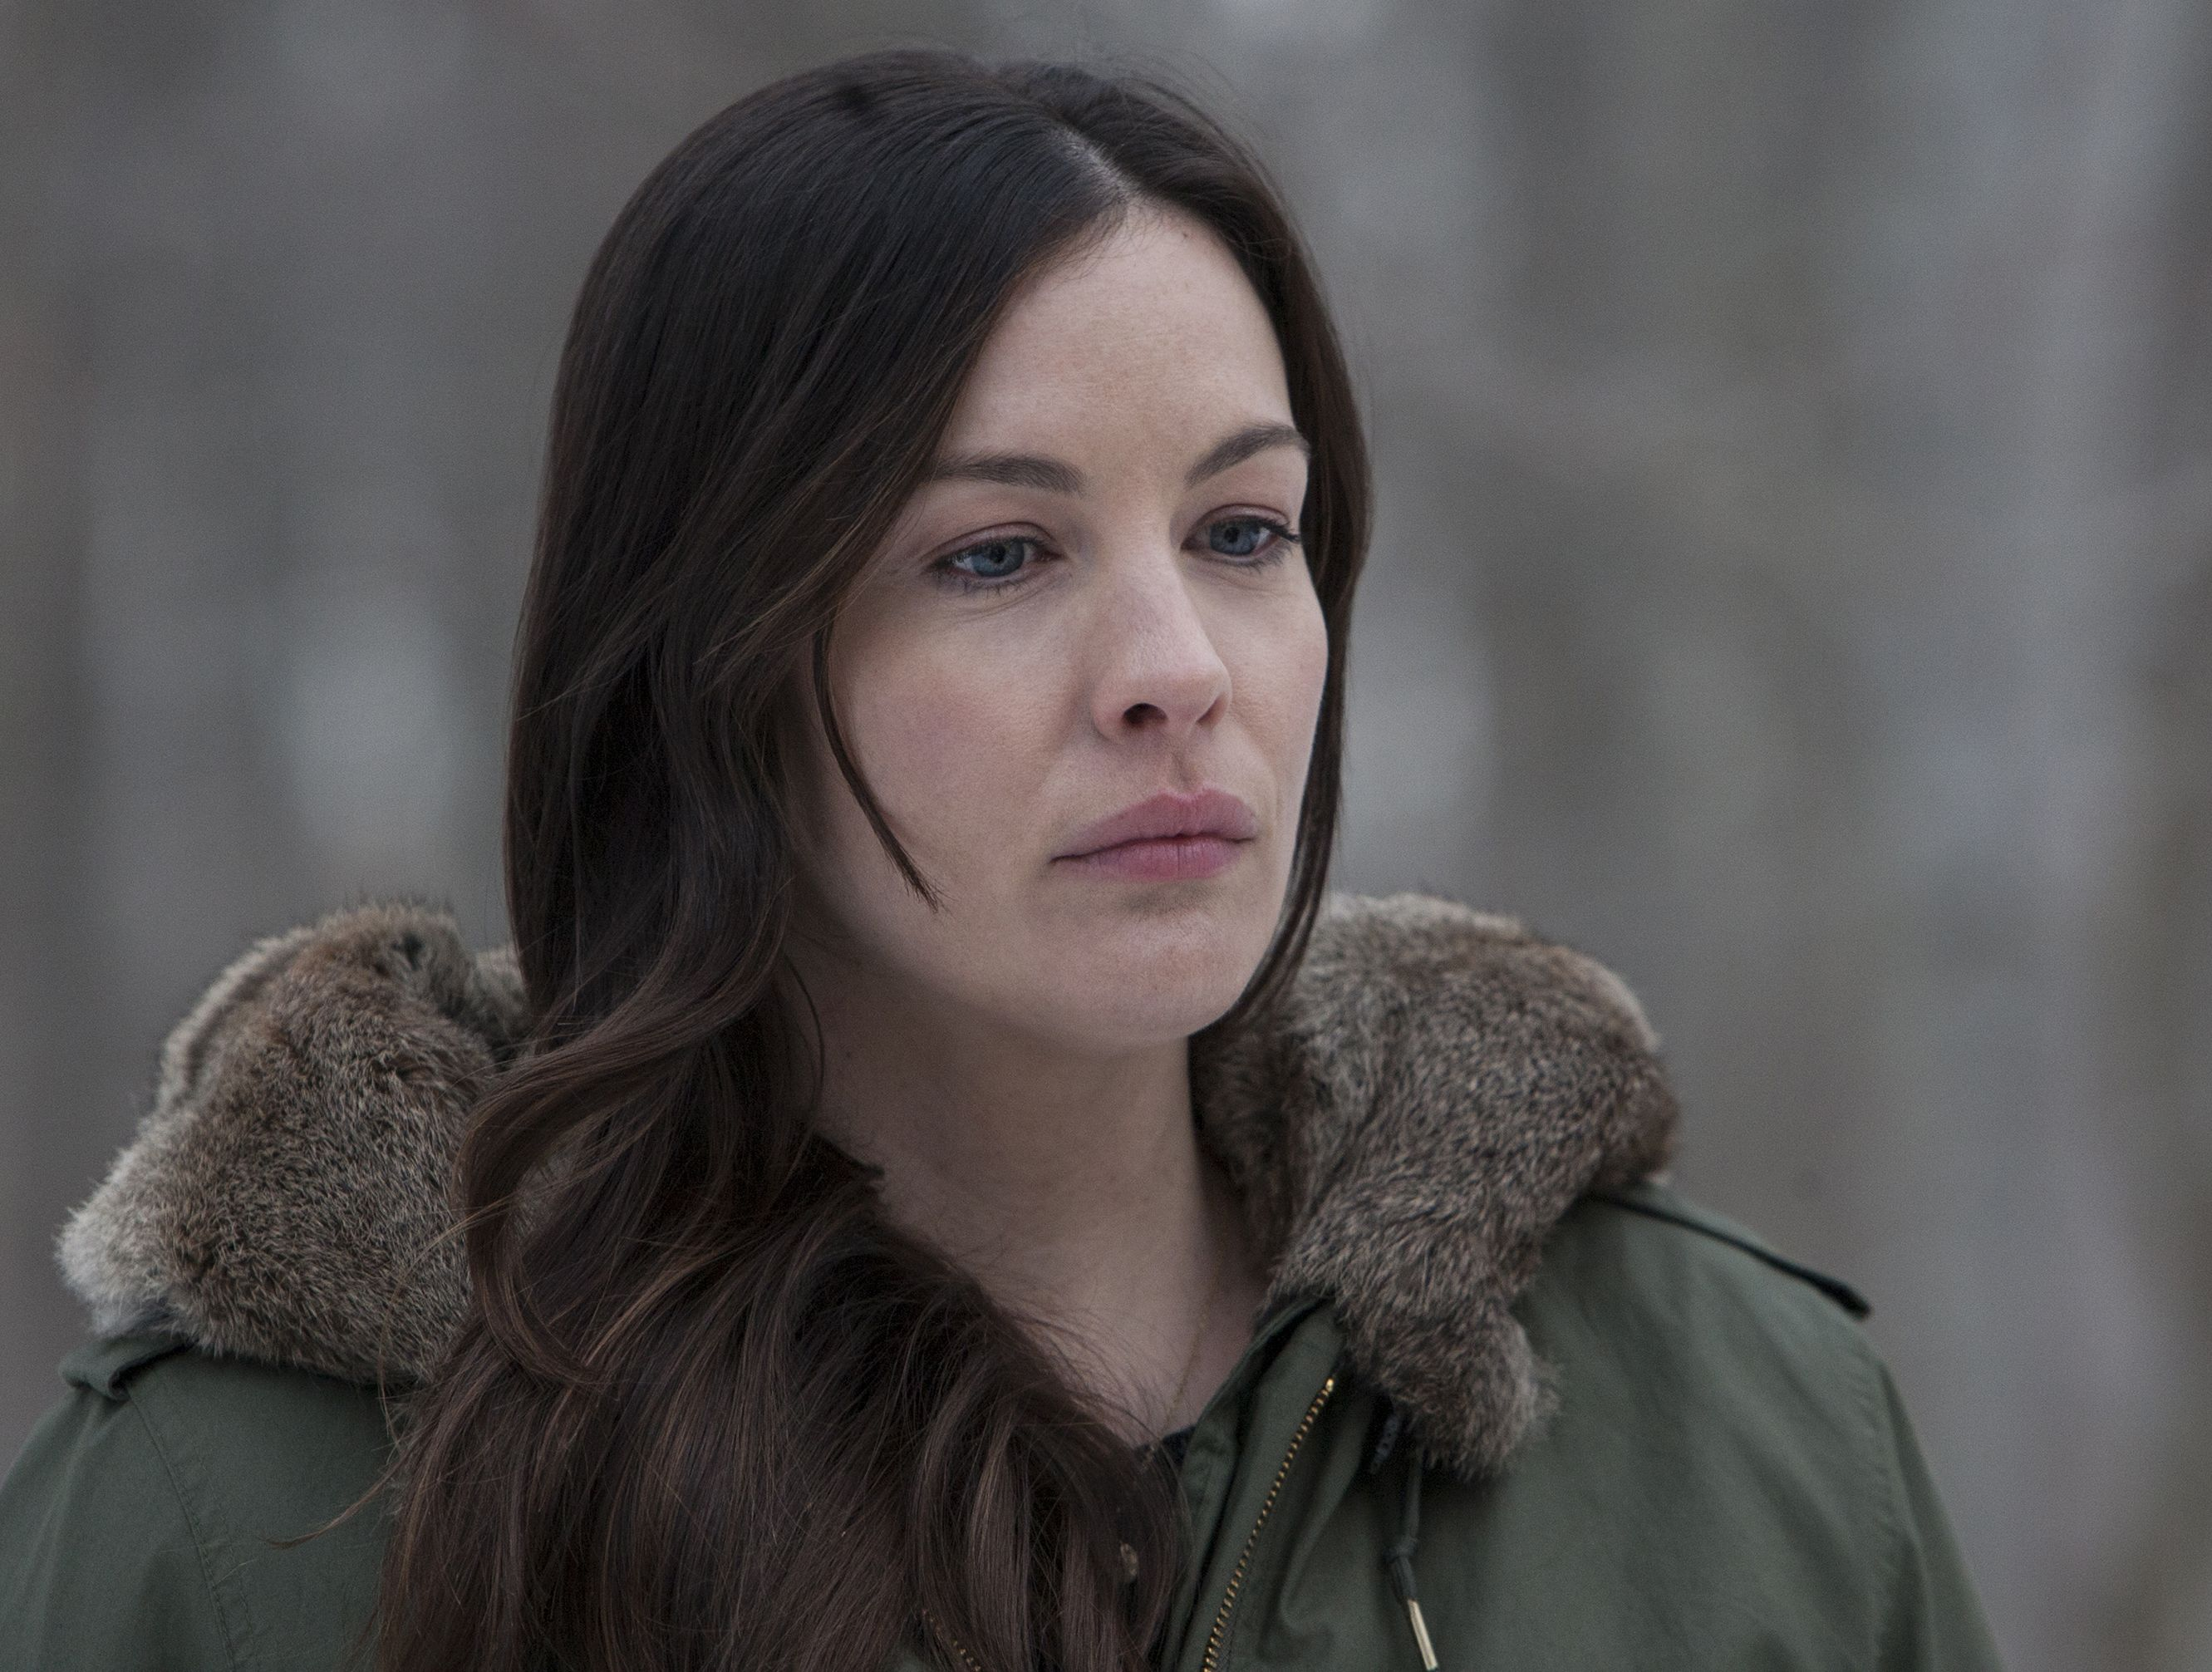 Liv Tyler joins the white people in The Leftovers